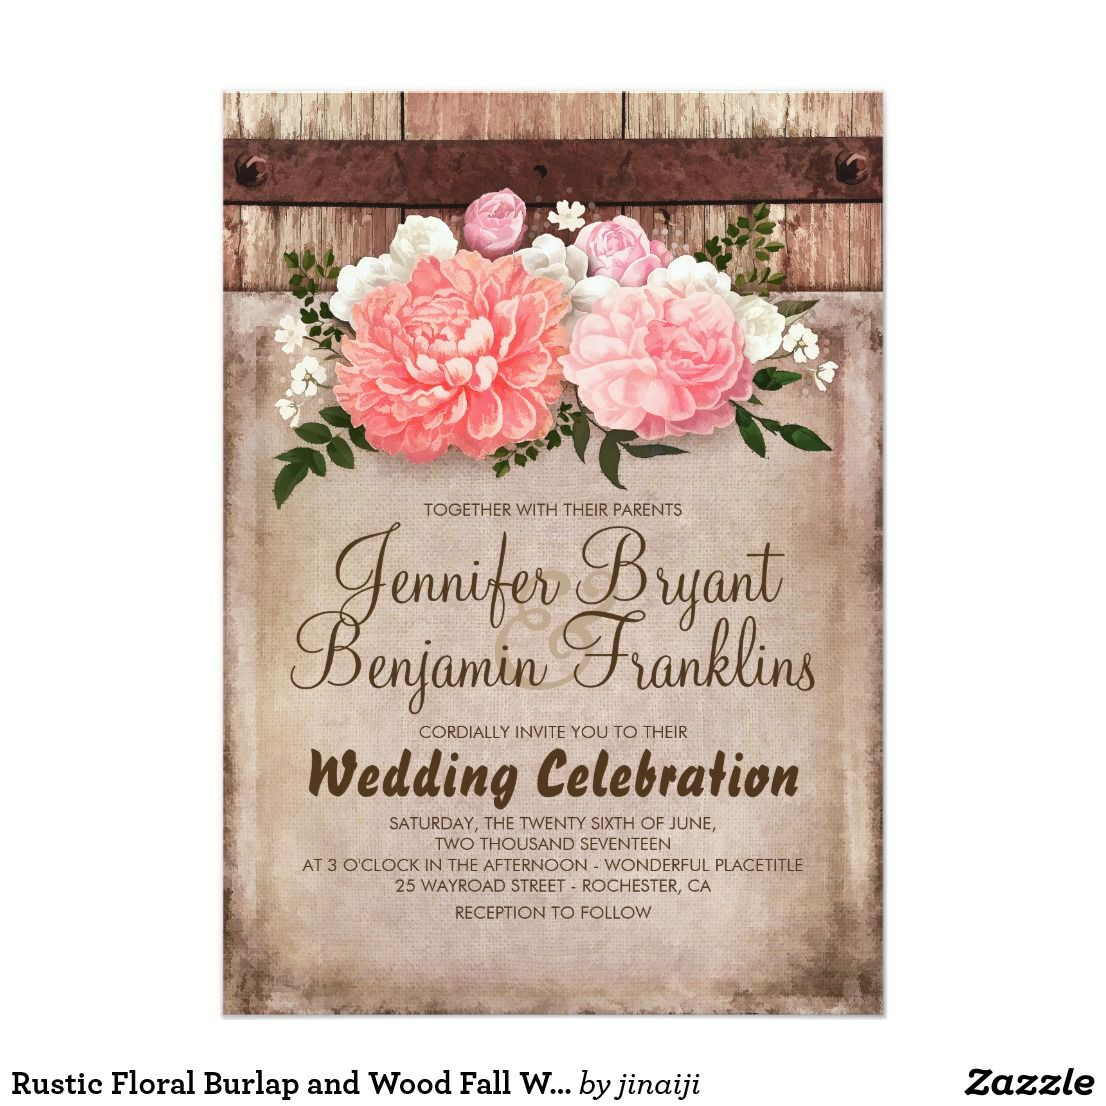 Rustic Floral Burlap and Wood Fall Wedding Invitation | Pinterest ...